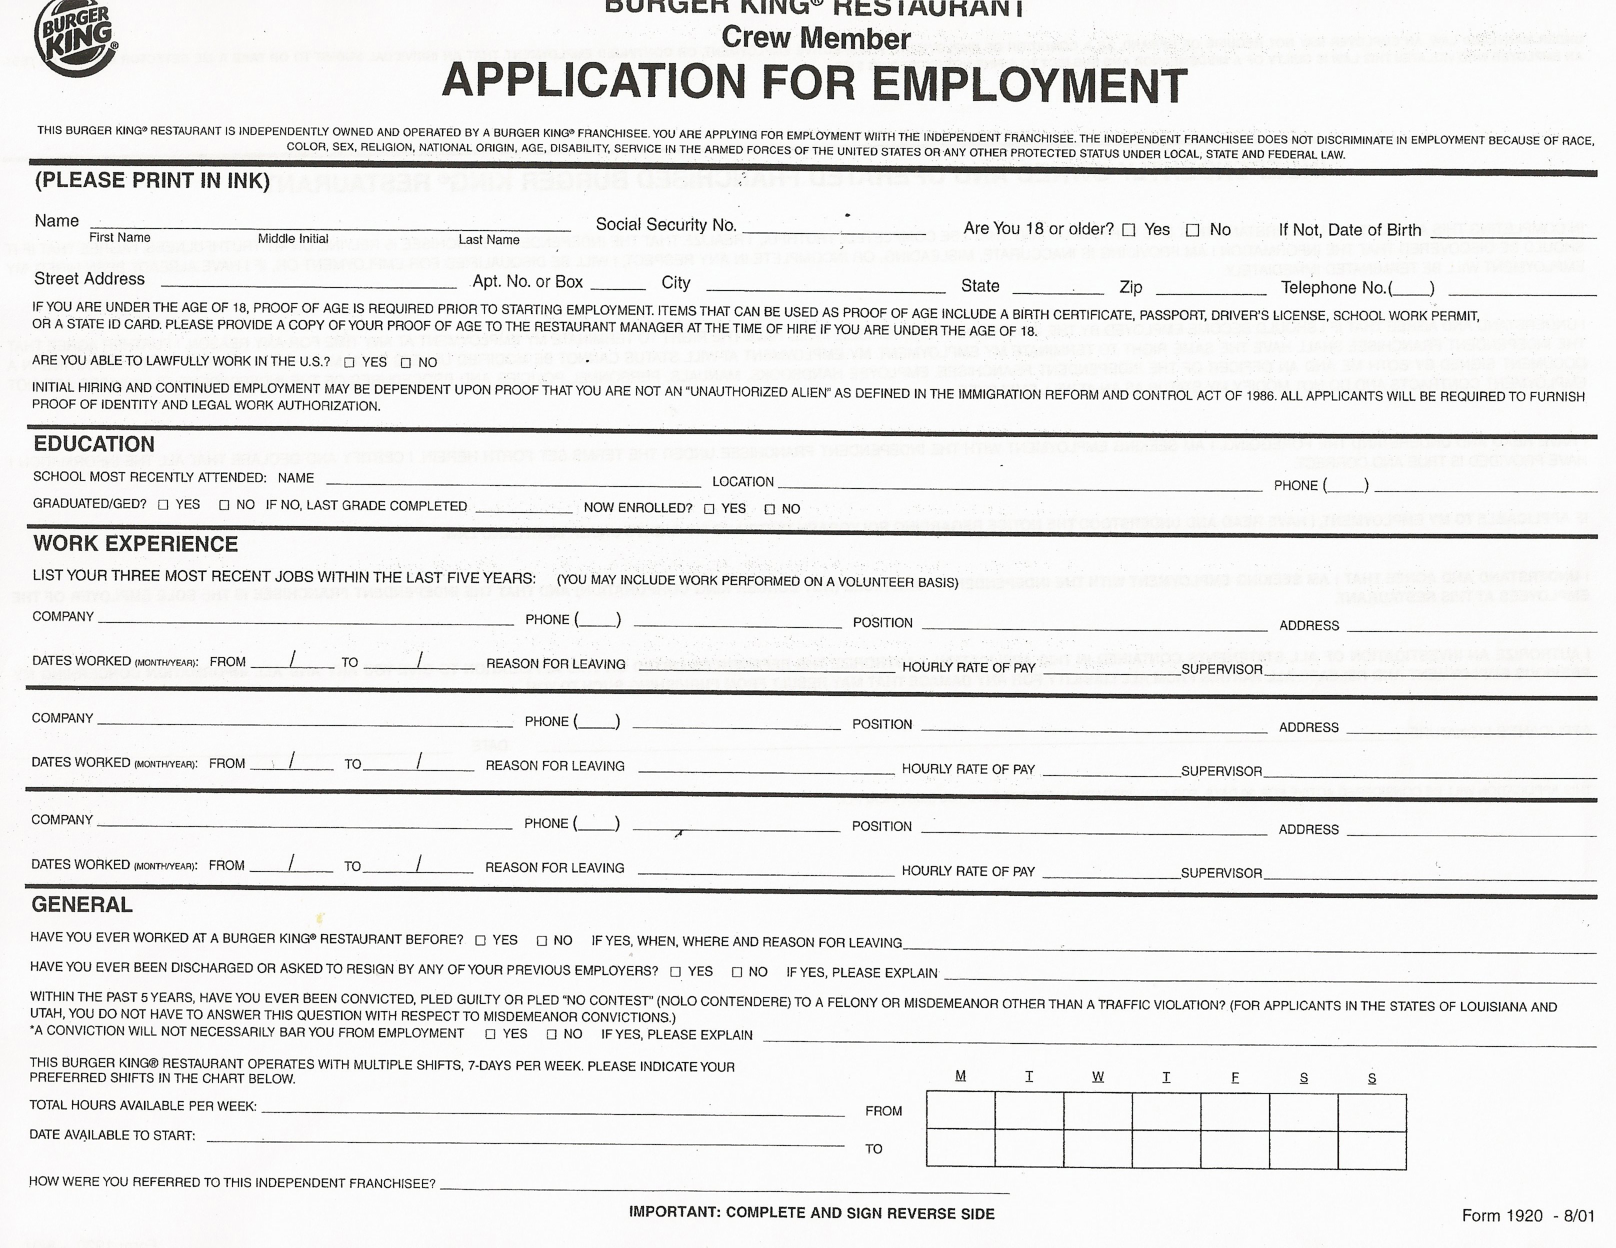 Job Application Forms To Print | Printable Job Application Forms Applicants